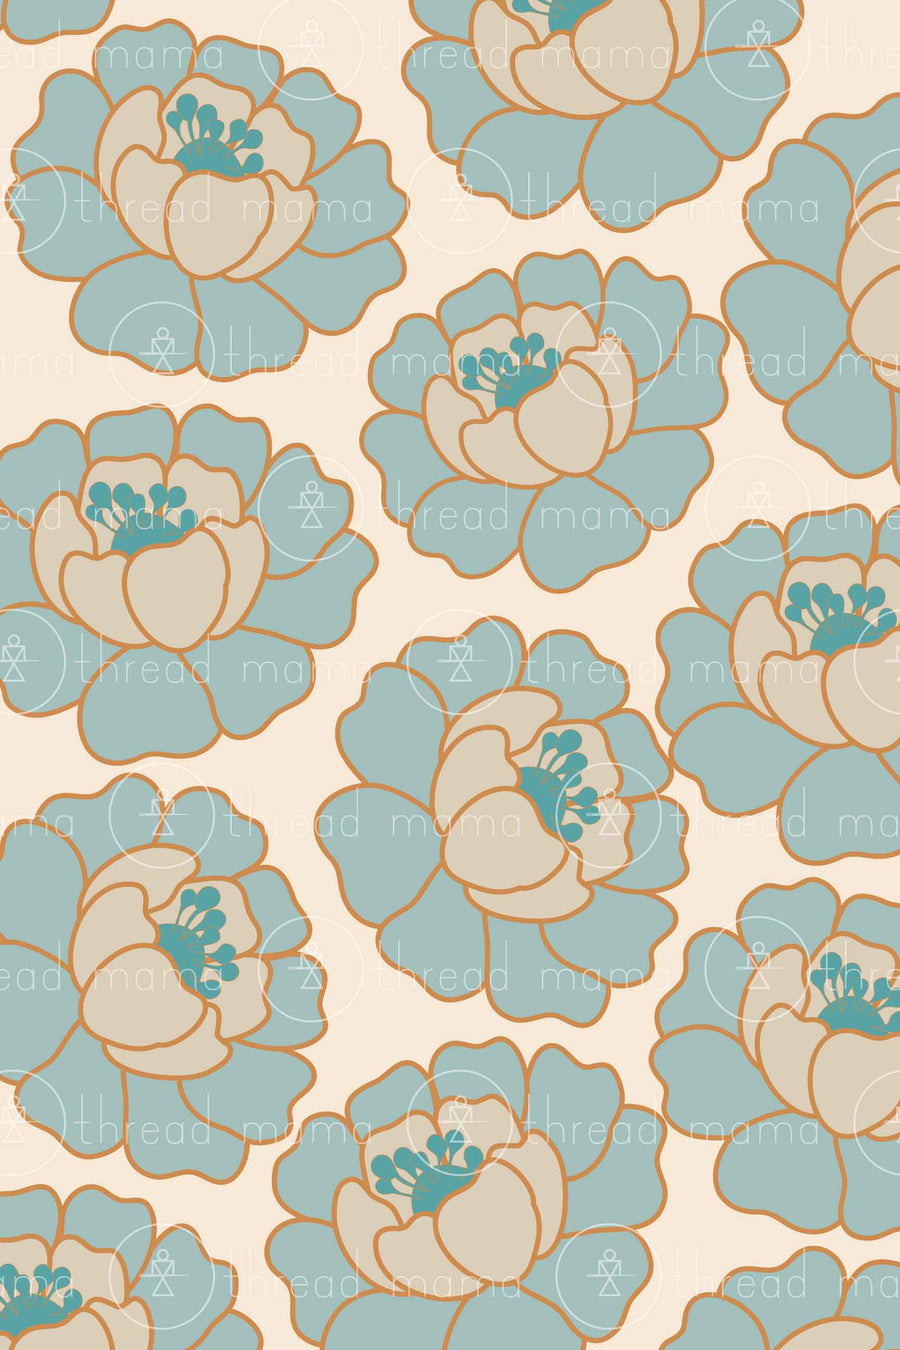 Repeating Pattern #6 (Seamless)